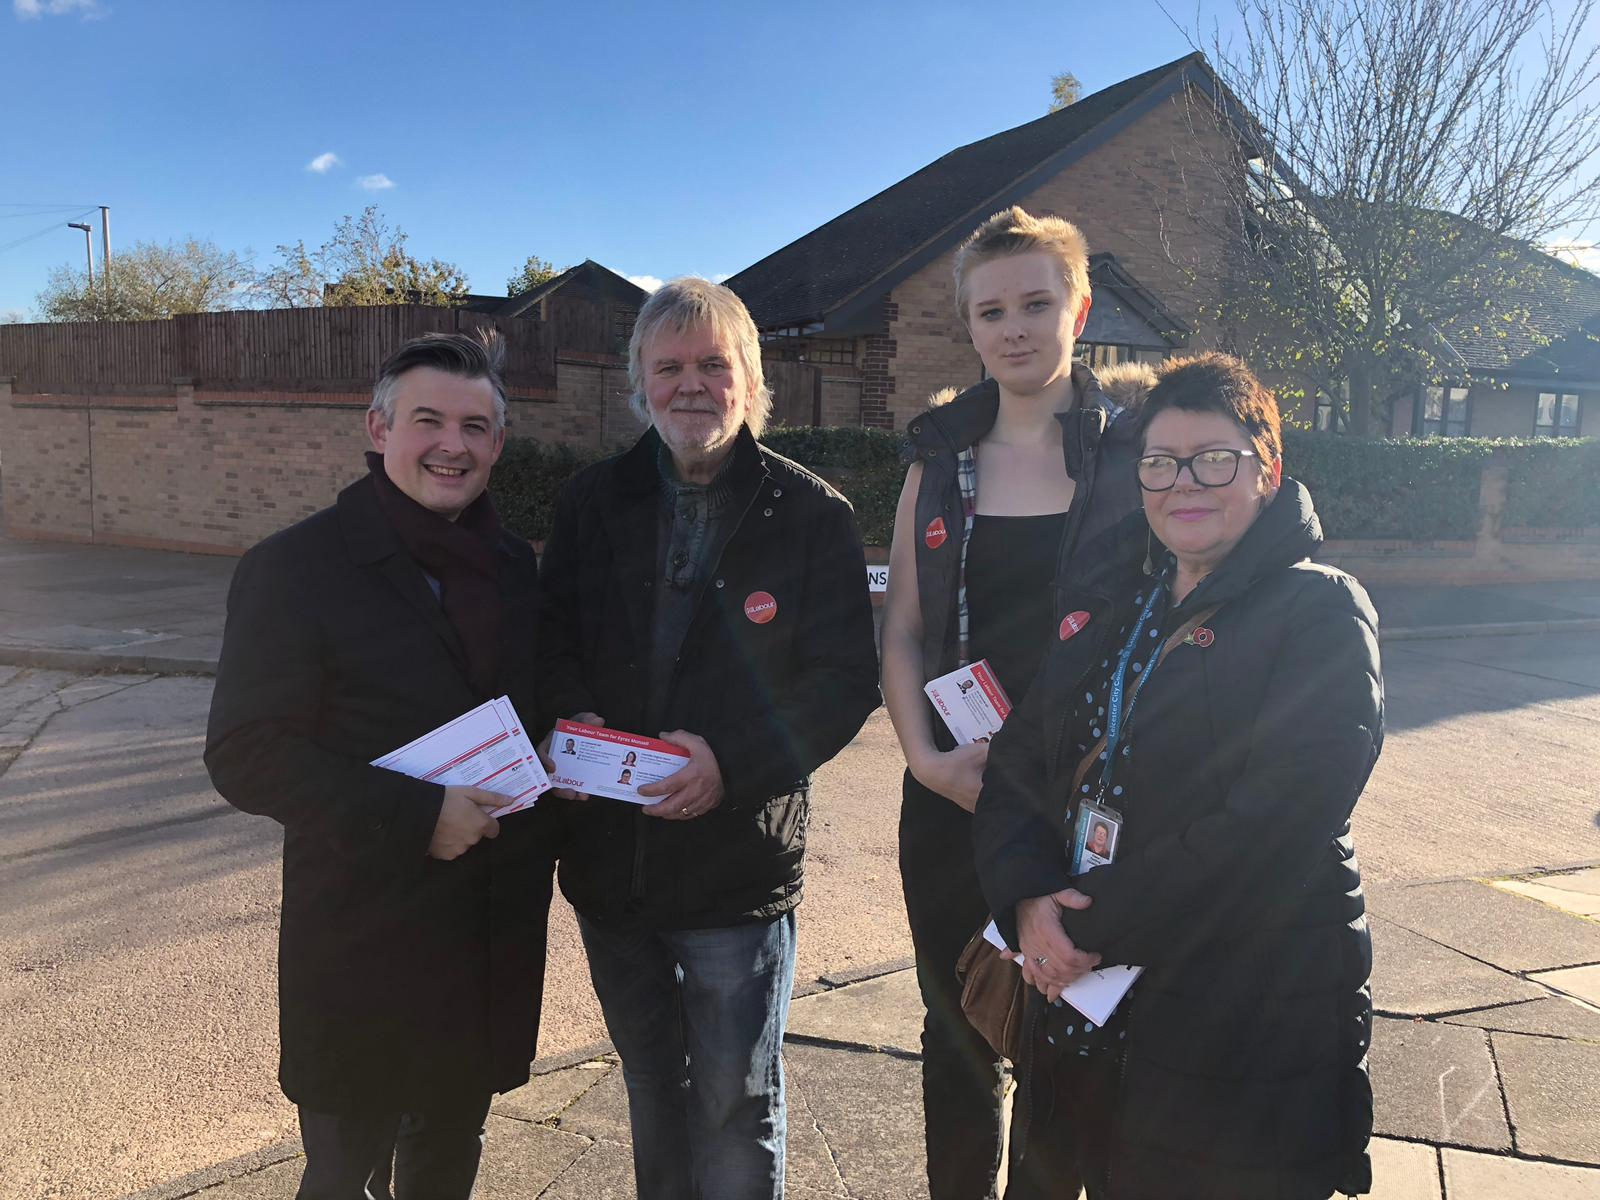 Jon and local Councillors have been out and about in Eyres Monsell today listening to concerns and doing what they can to help - Friday November 2 2018